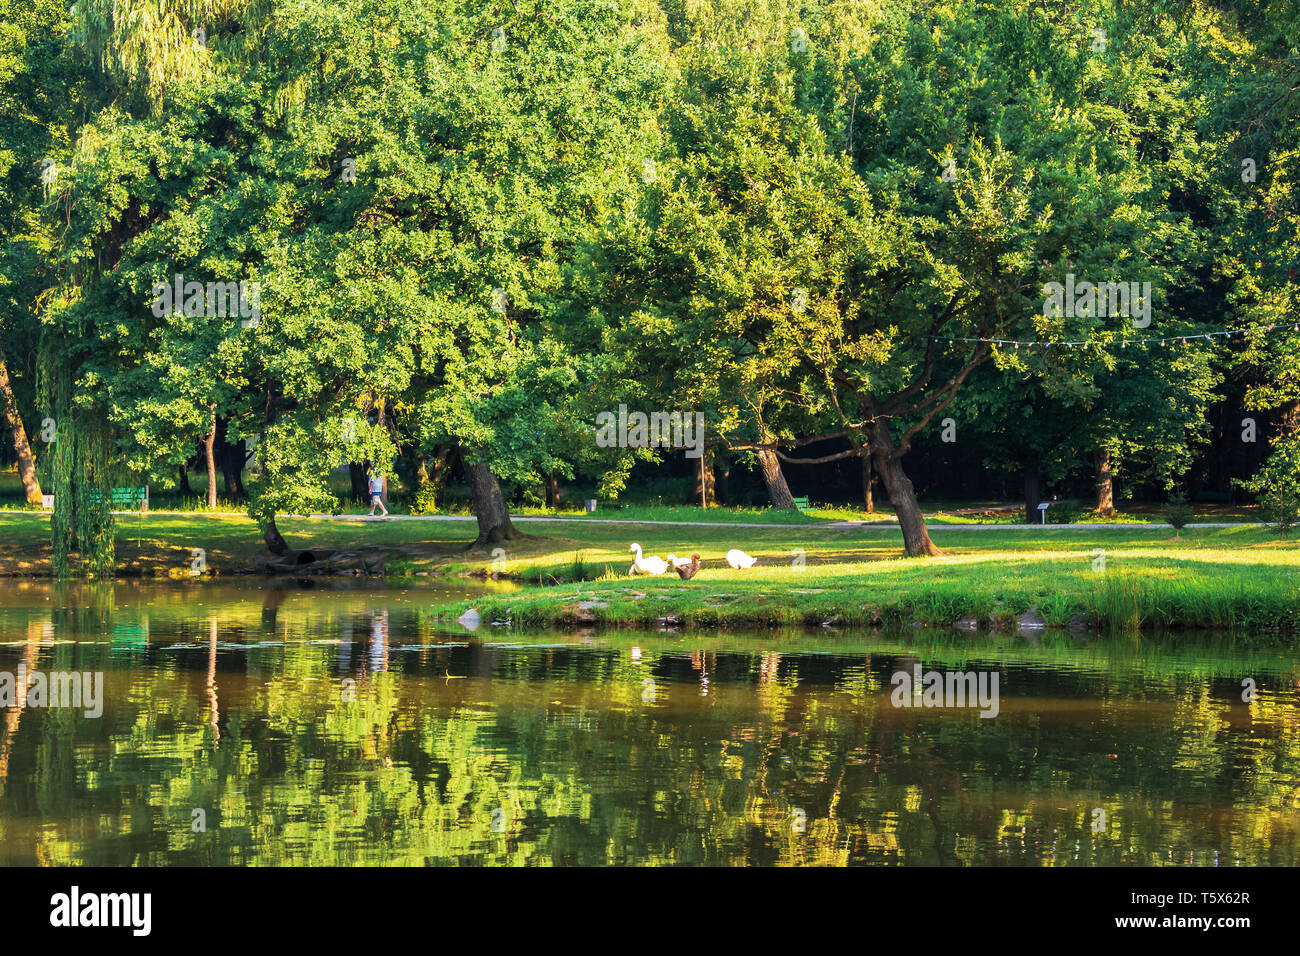 pond in the morning park. beautiful scenery in sunlight. ducks on the shore. reflection in the water surface - Stock Image